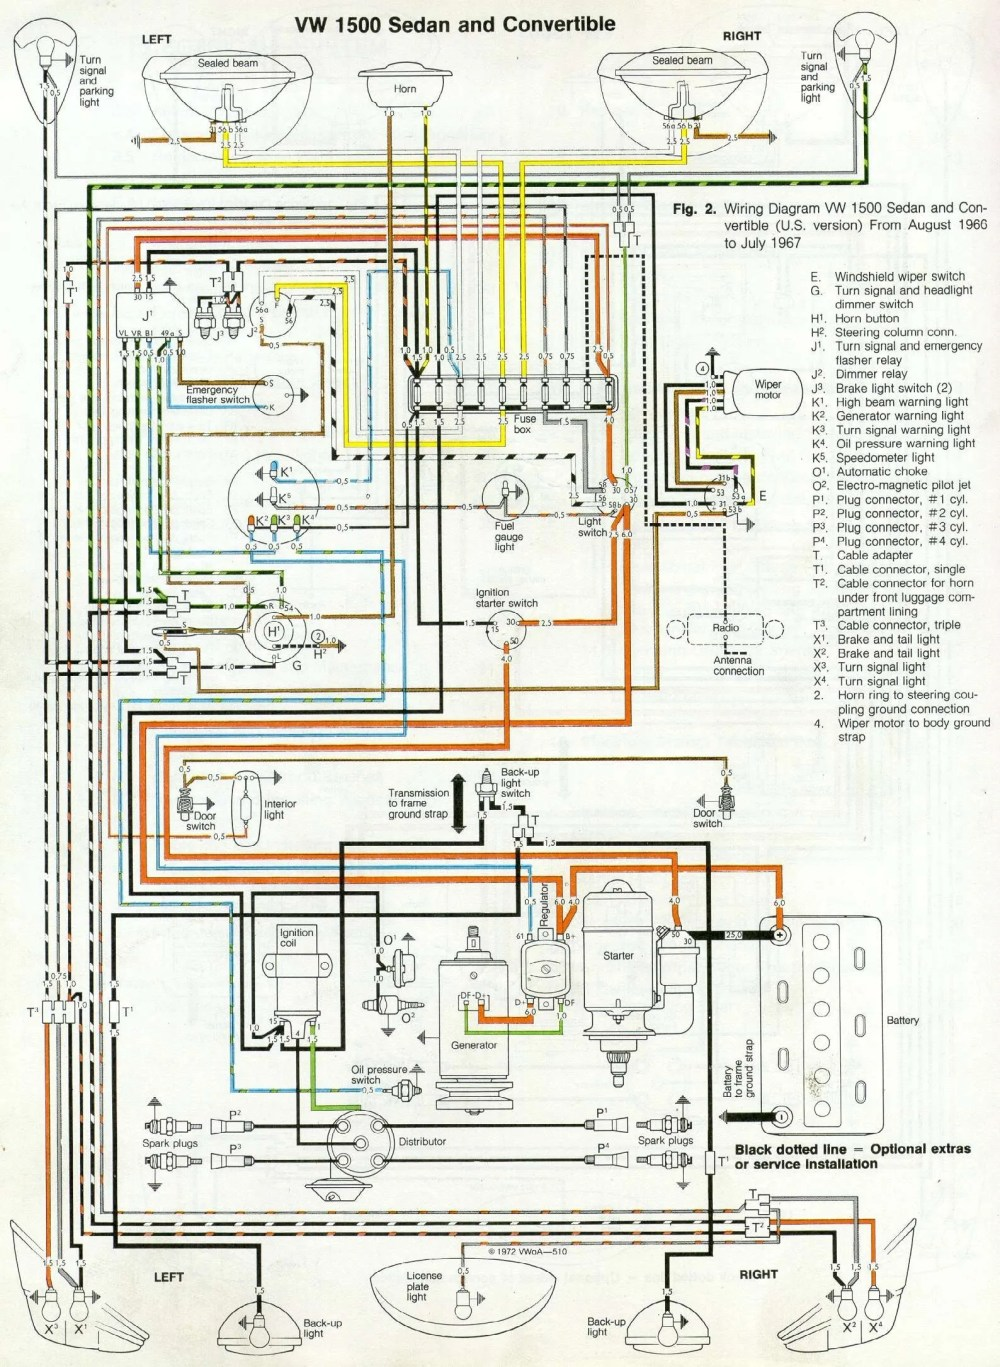 medium resolution of 1967 vw bug fuse box diagram wiring diagram expert67 beetle wiring diagram u s version 1967 vw